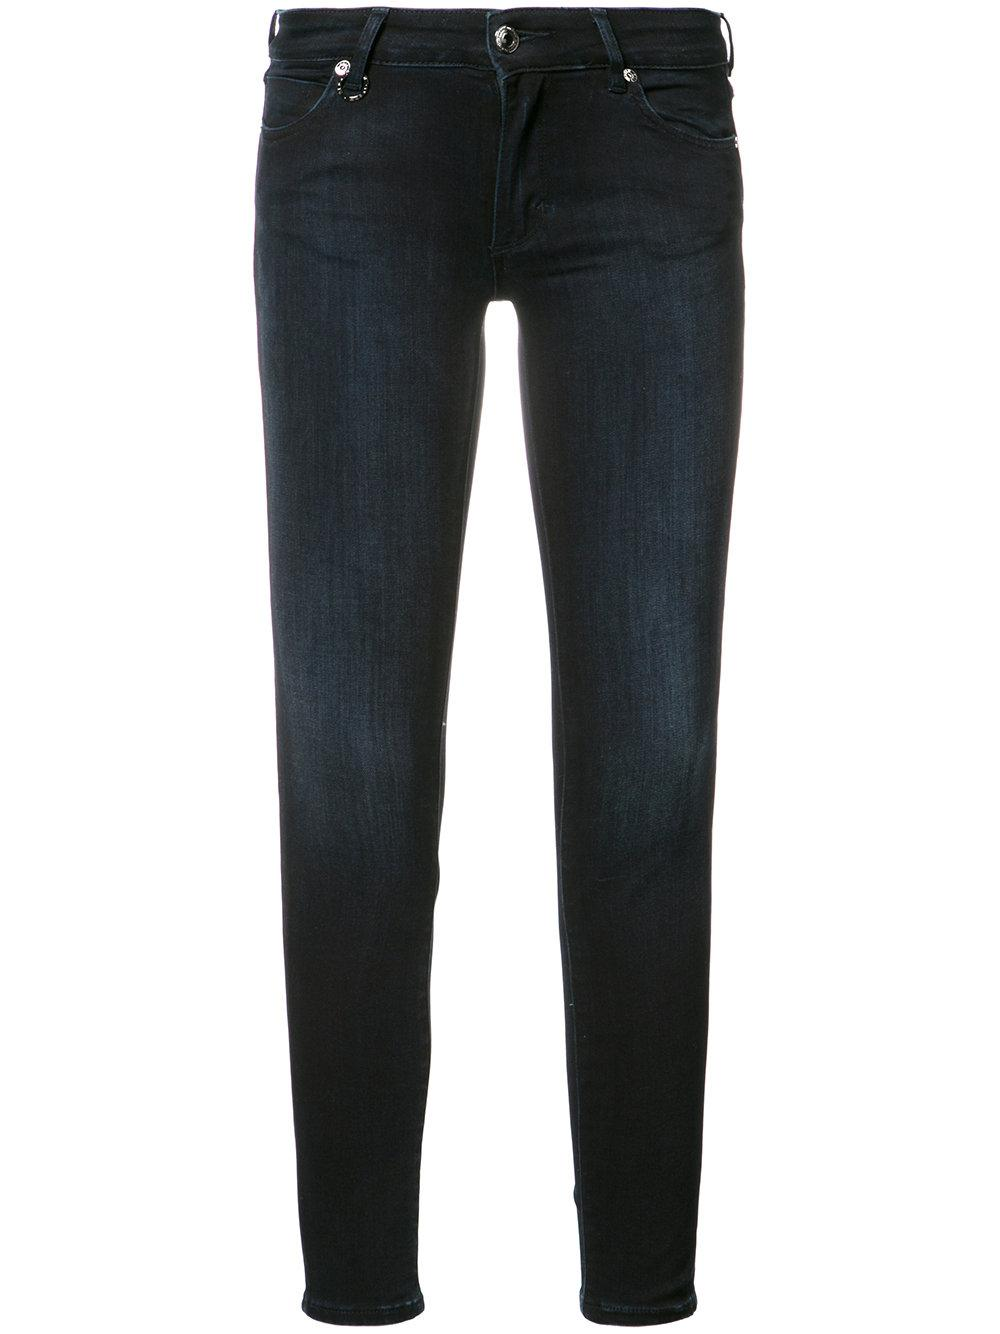 ASOS DESIGN Egerton rigid cropped flare jeans in mono check print. £ ASOS DESIGN Lisbon mid rise skinny jeans in clean black in ankle grazer length. £ ASOS DESIGN Maternity Ridley skinny jeansin clean black with over the bump waistband. £